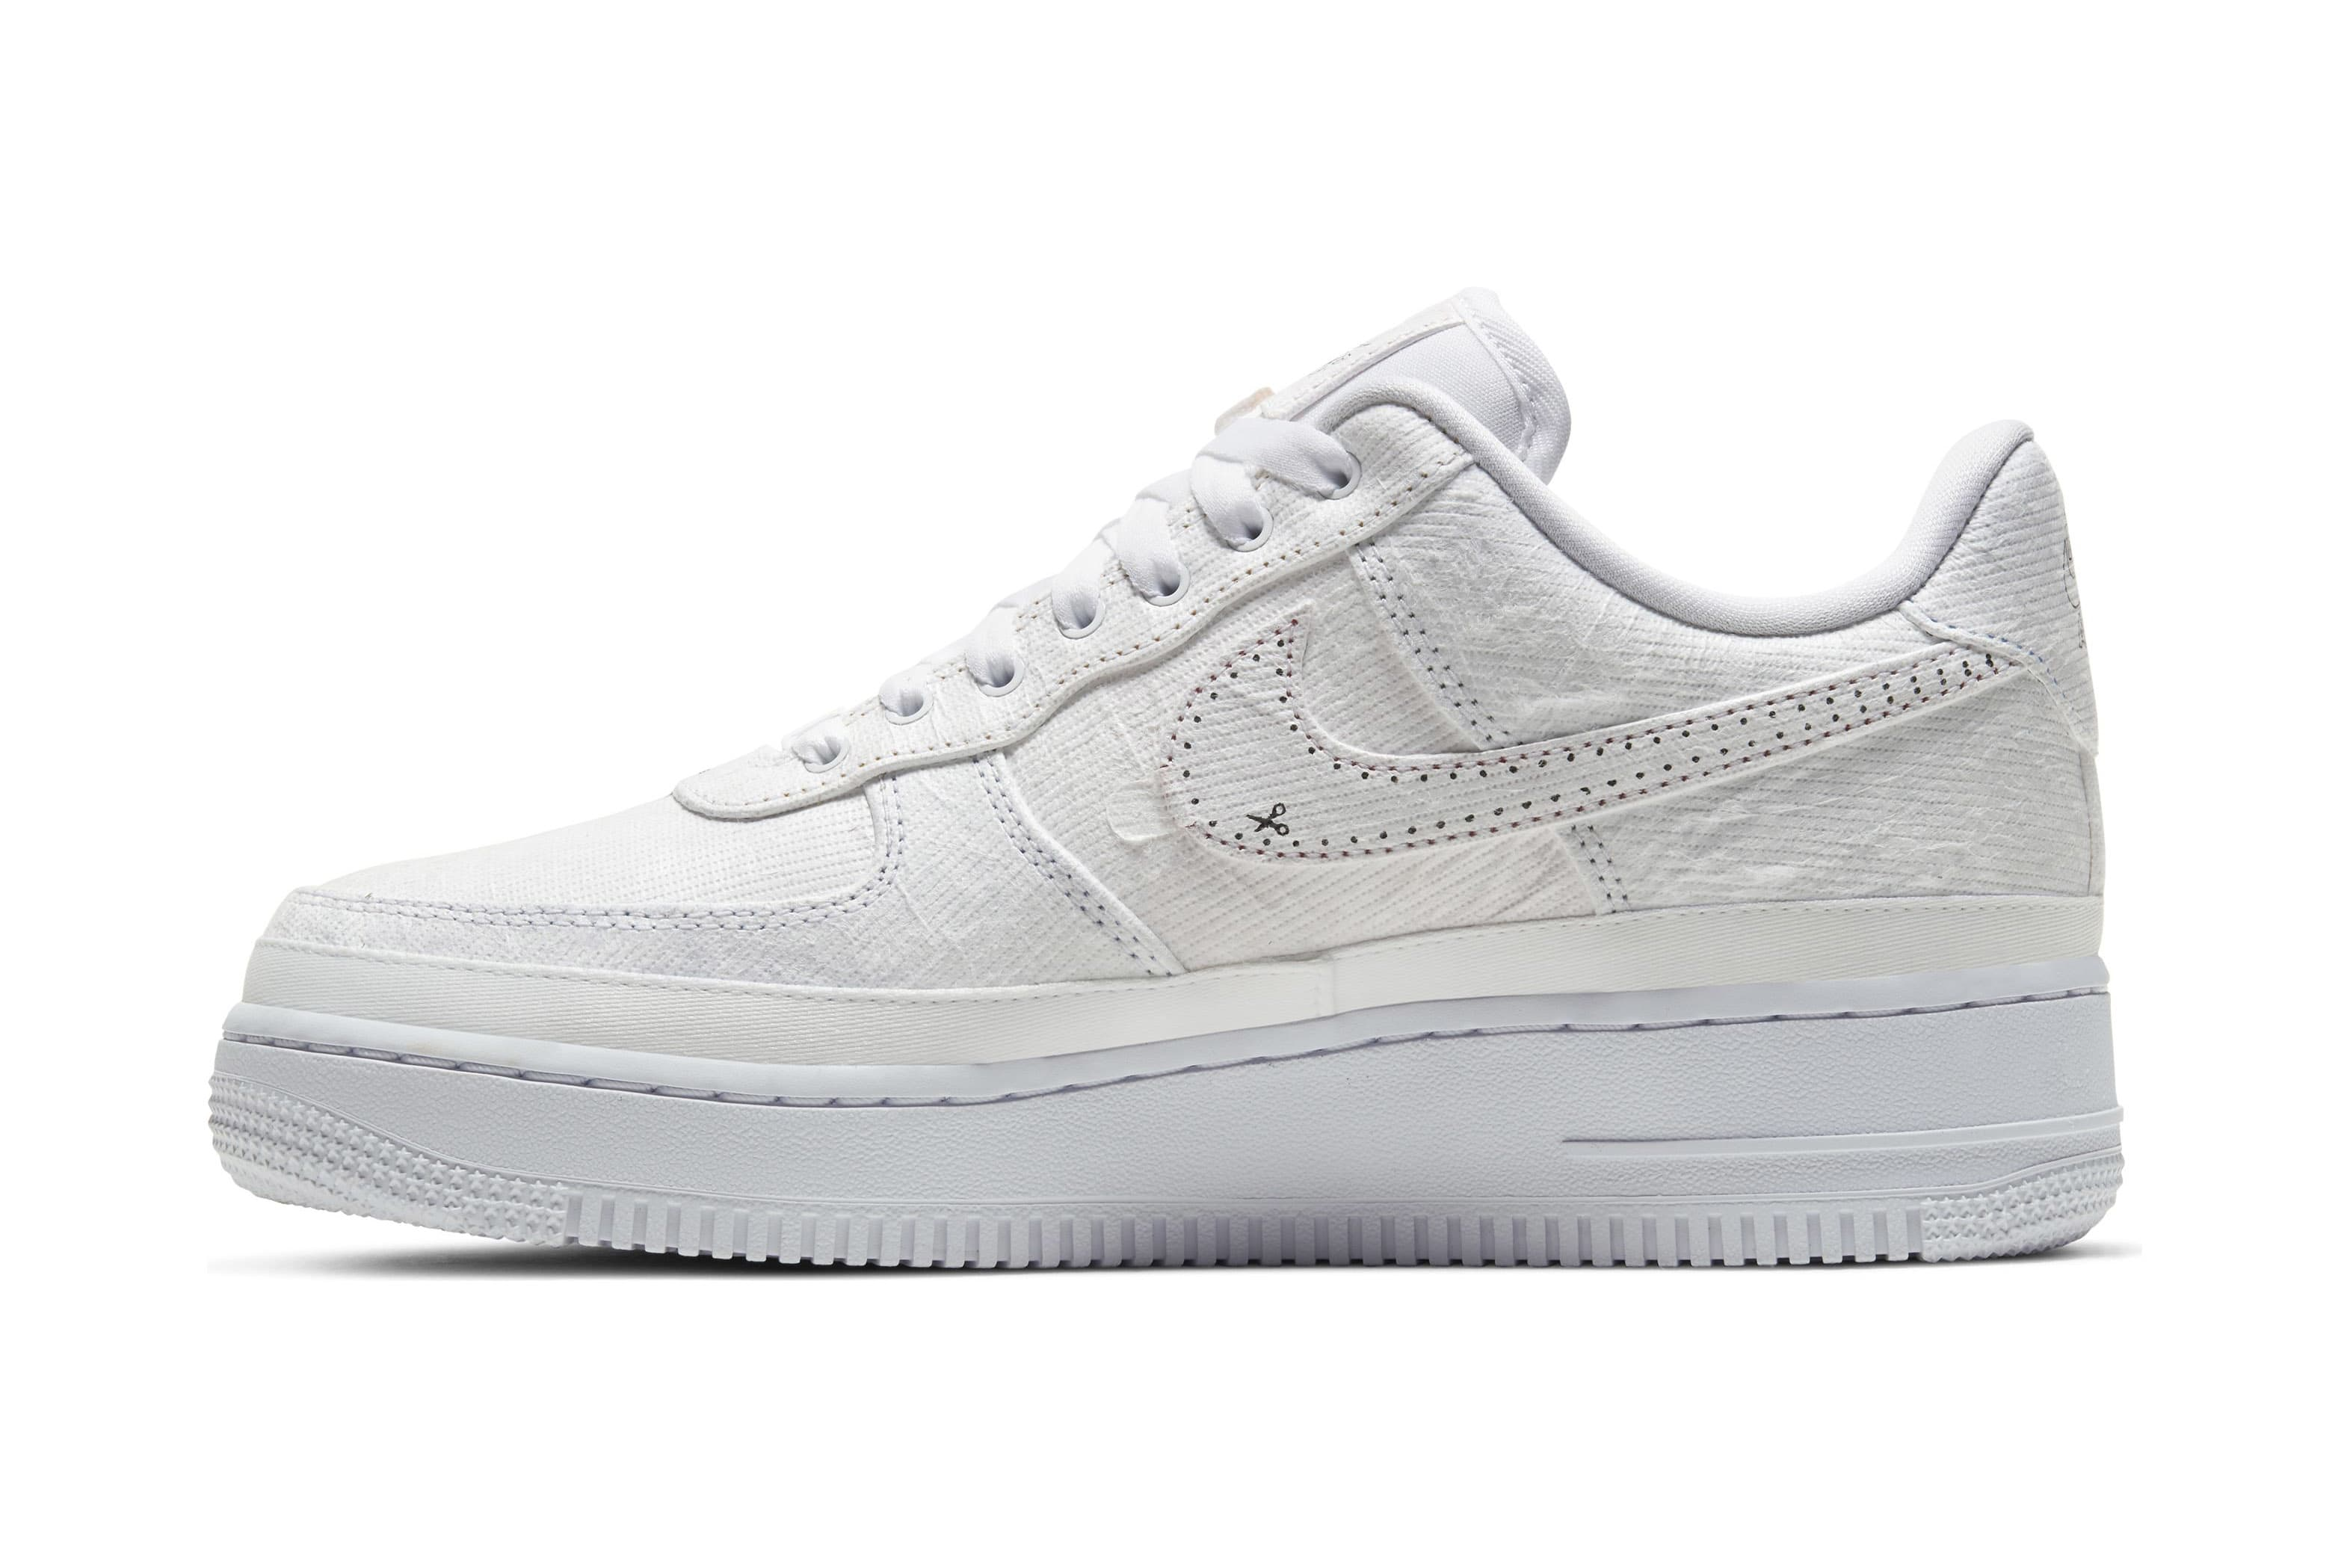 Nike Air Force 1 '07 LX W - CJ1650-101